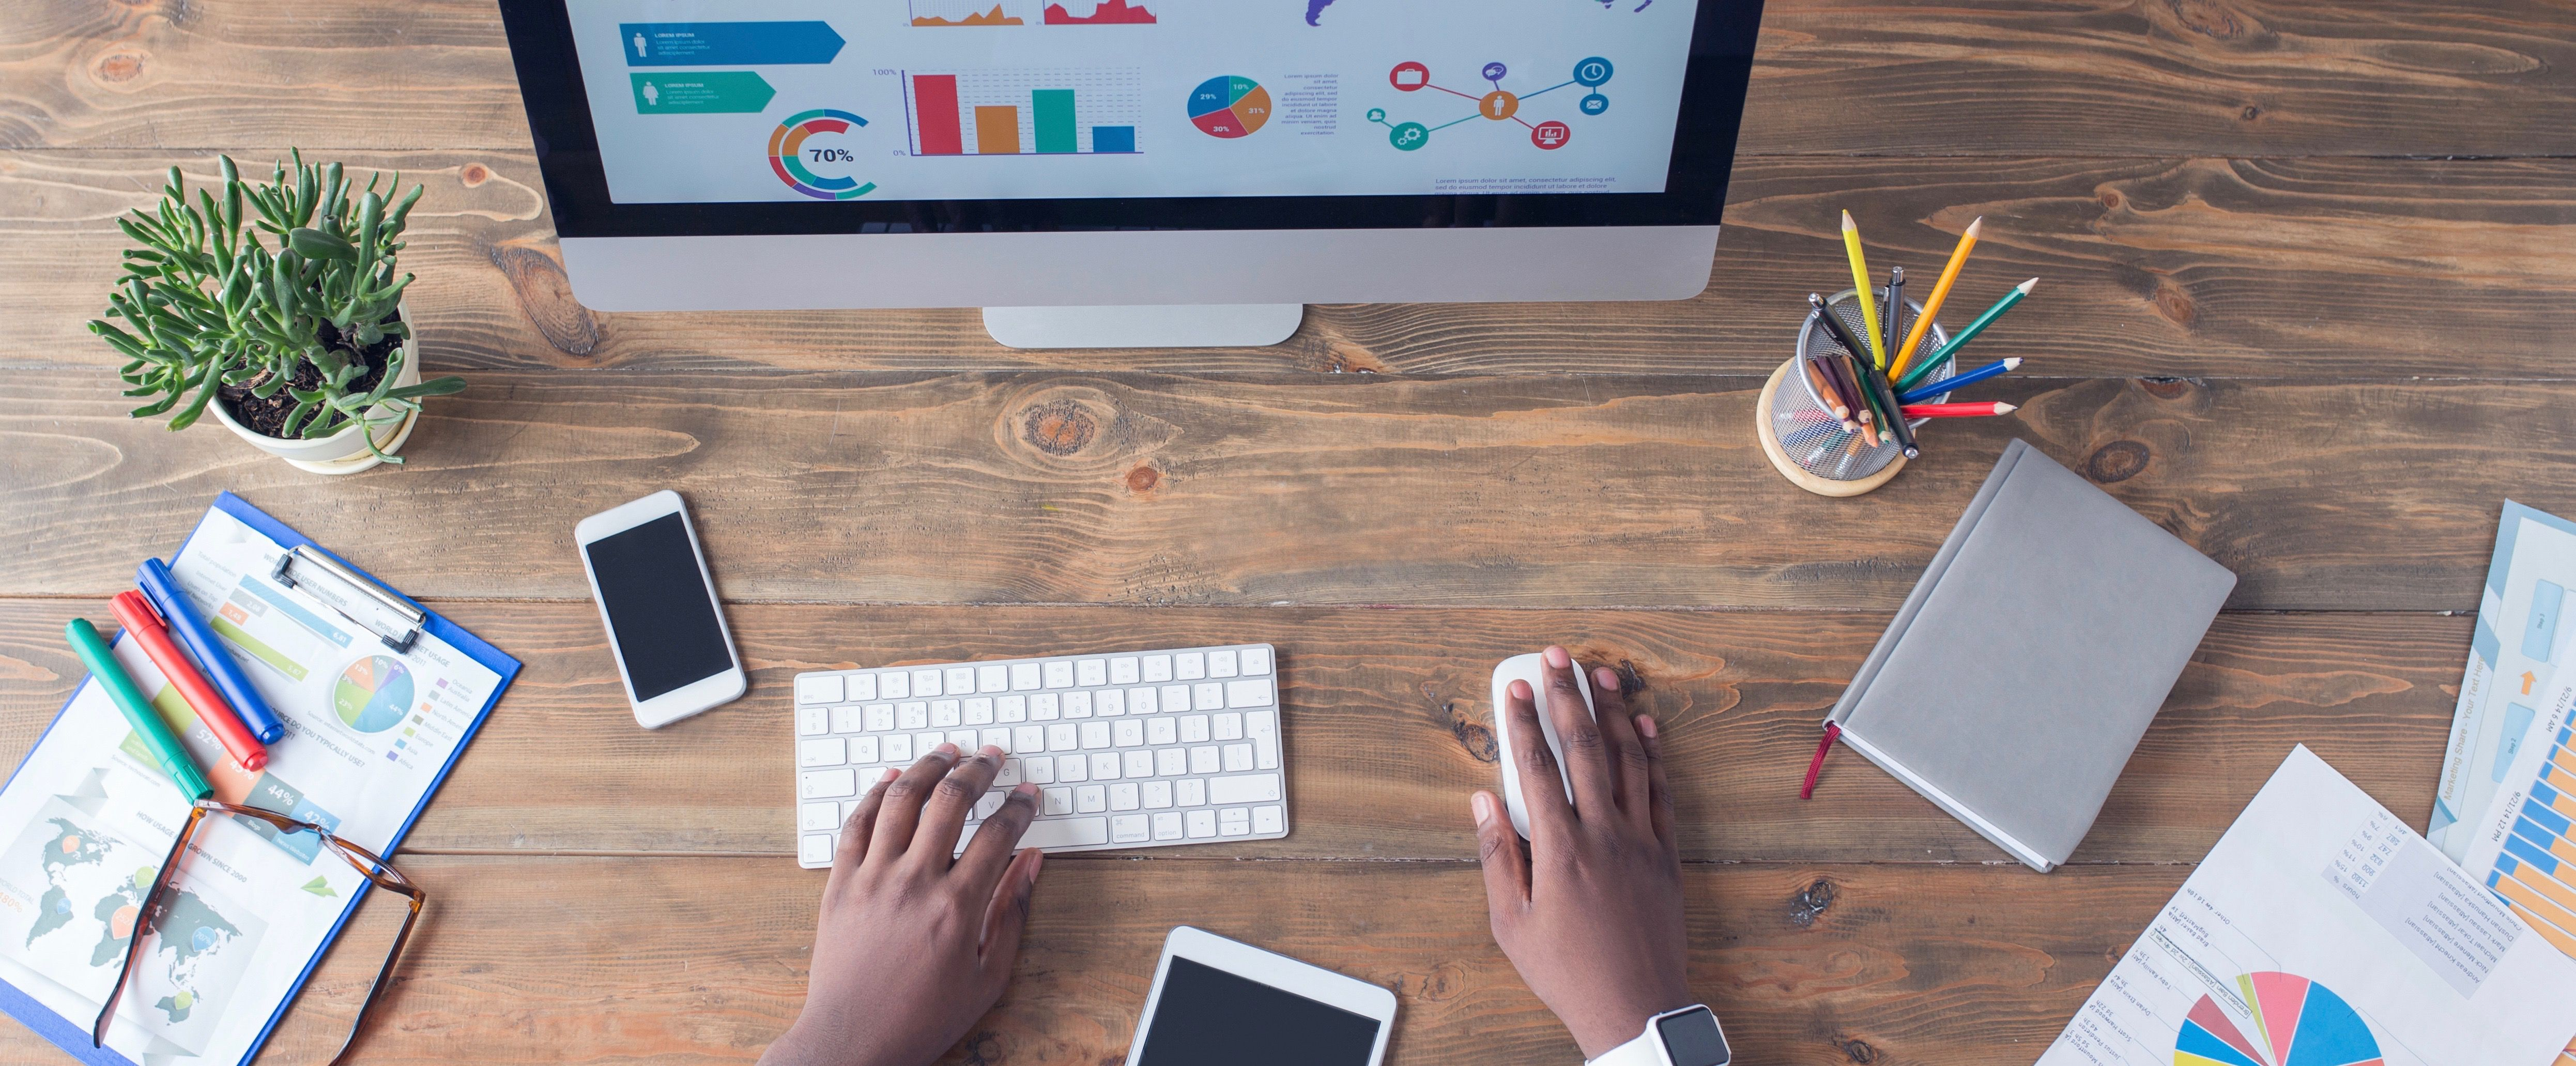 THE COMPREHENSIVE GUIDE TO STARTING A WEB ADVERTISING TO PROMOTE YOUR BUSINESS